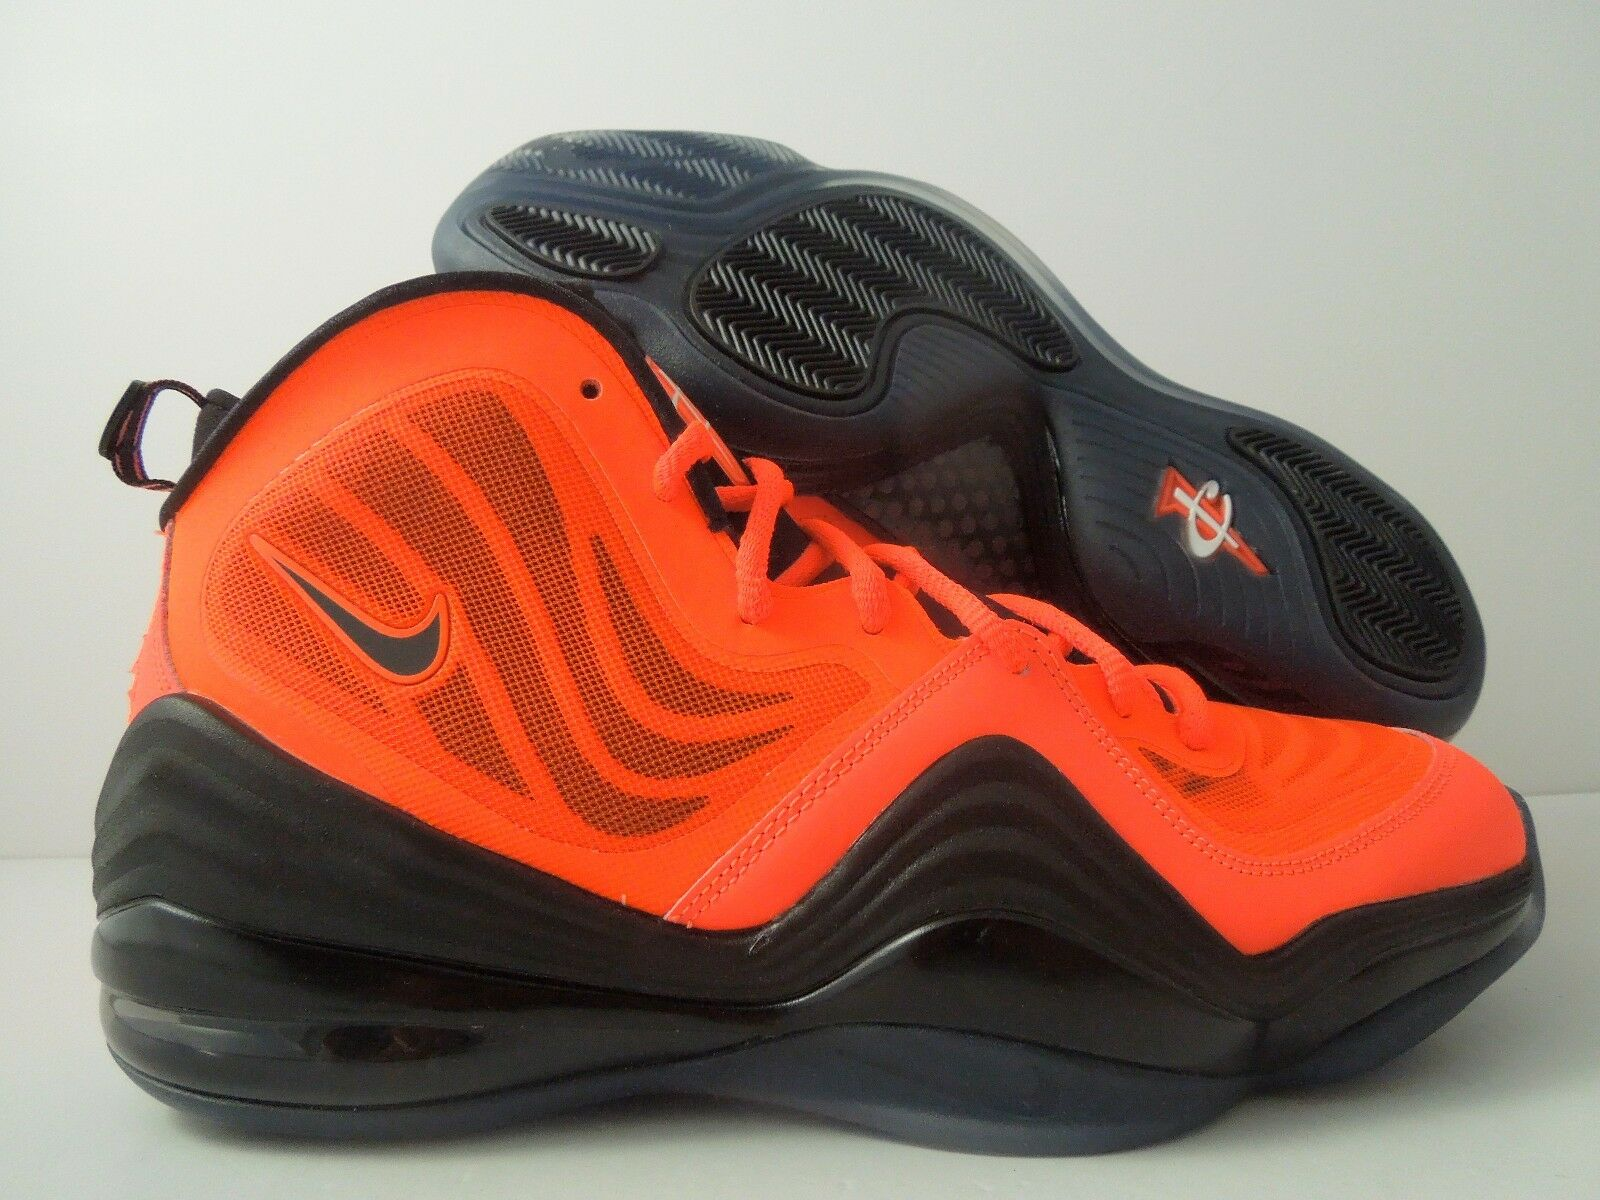 NIKE AIR PENNY V 10 TOTAL CRIMSON ORANGE-BLACK SZ 10 V [537331-800] 2e9572